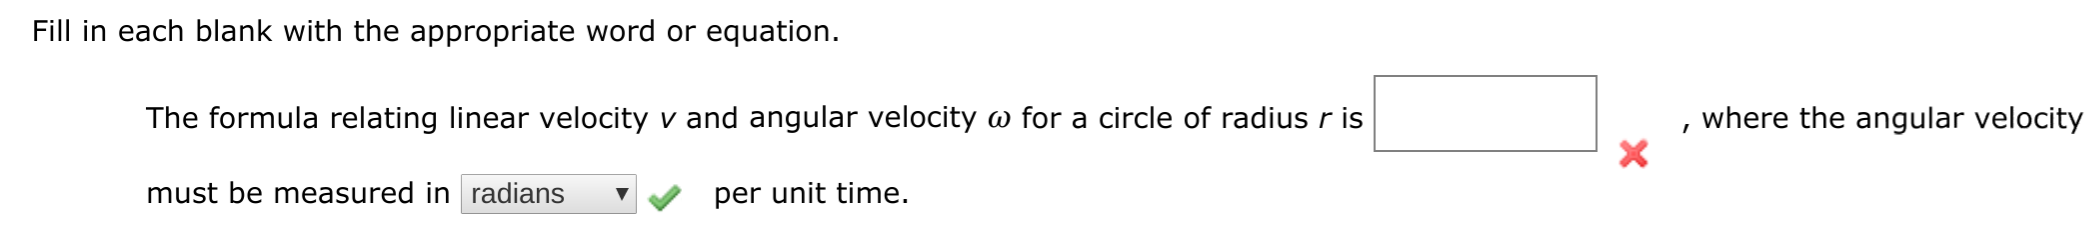 Fill in each blank with the appropriate word or equation where the angular velocity The formula relating linear velocity v and angular velocity w for a circle of radius r is must be measured in radians per unit time.